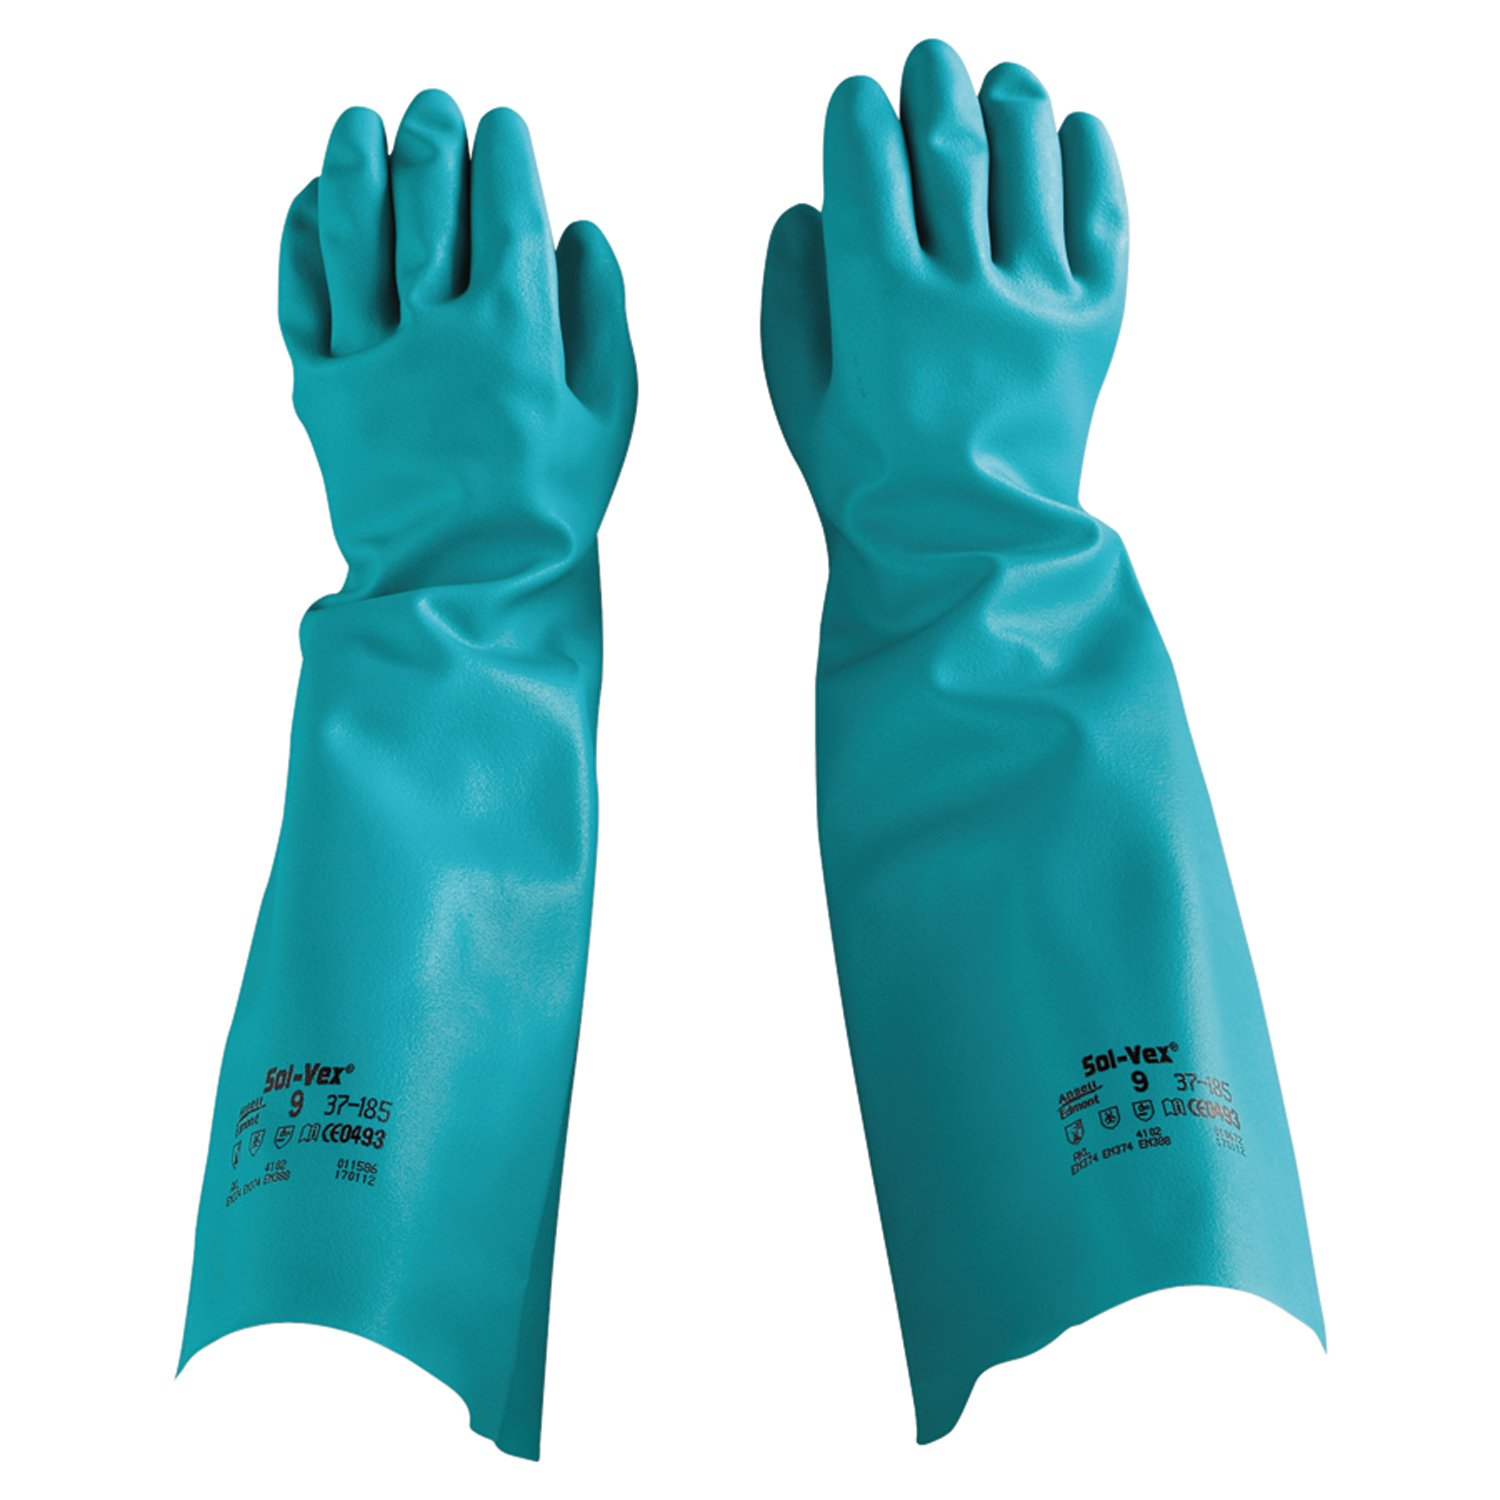 Ansell Solvex 37-185 Green Chemical Resistant Nitrile Gauntlet Gloves